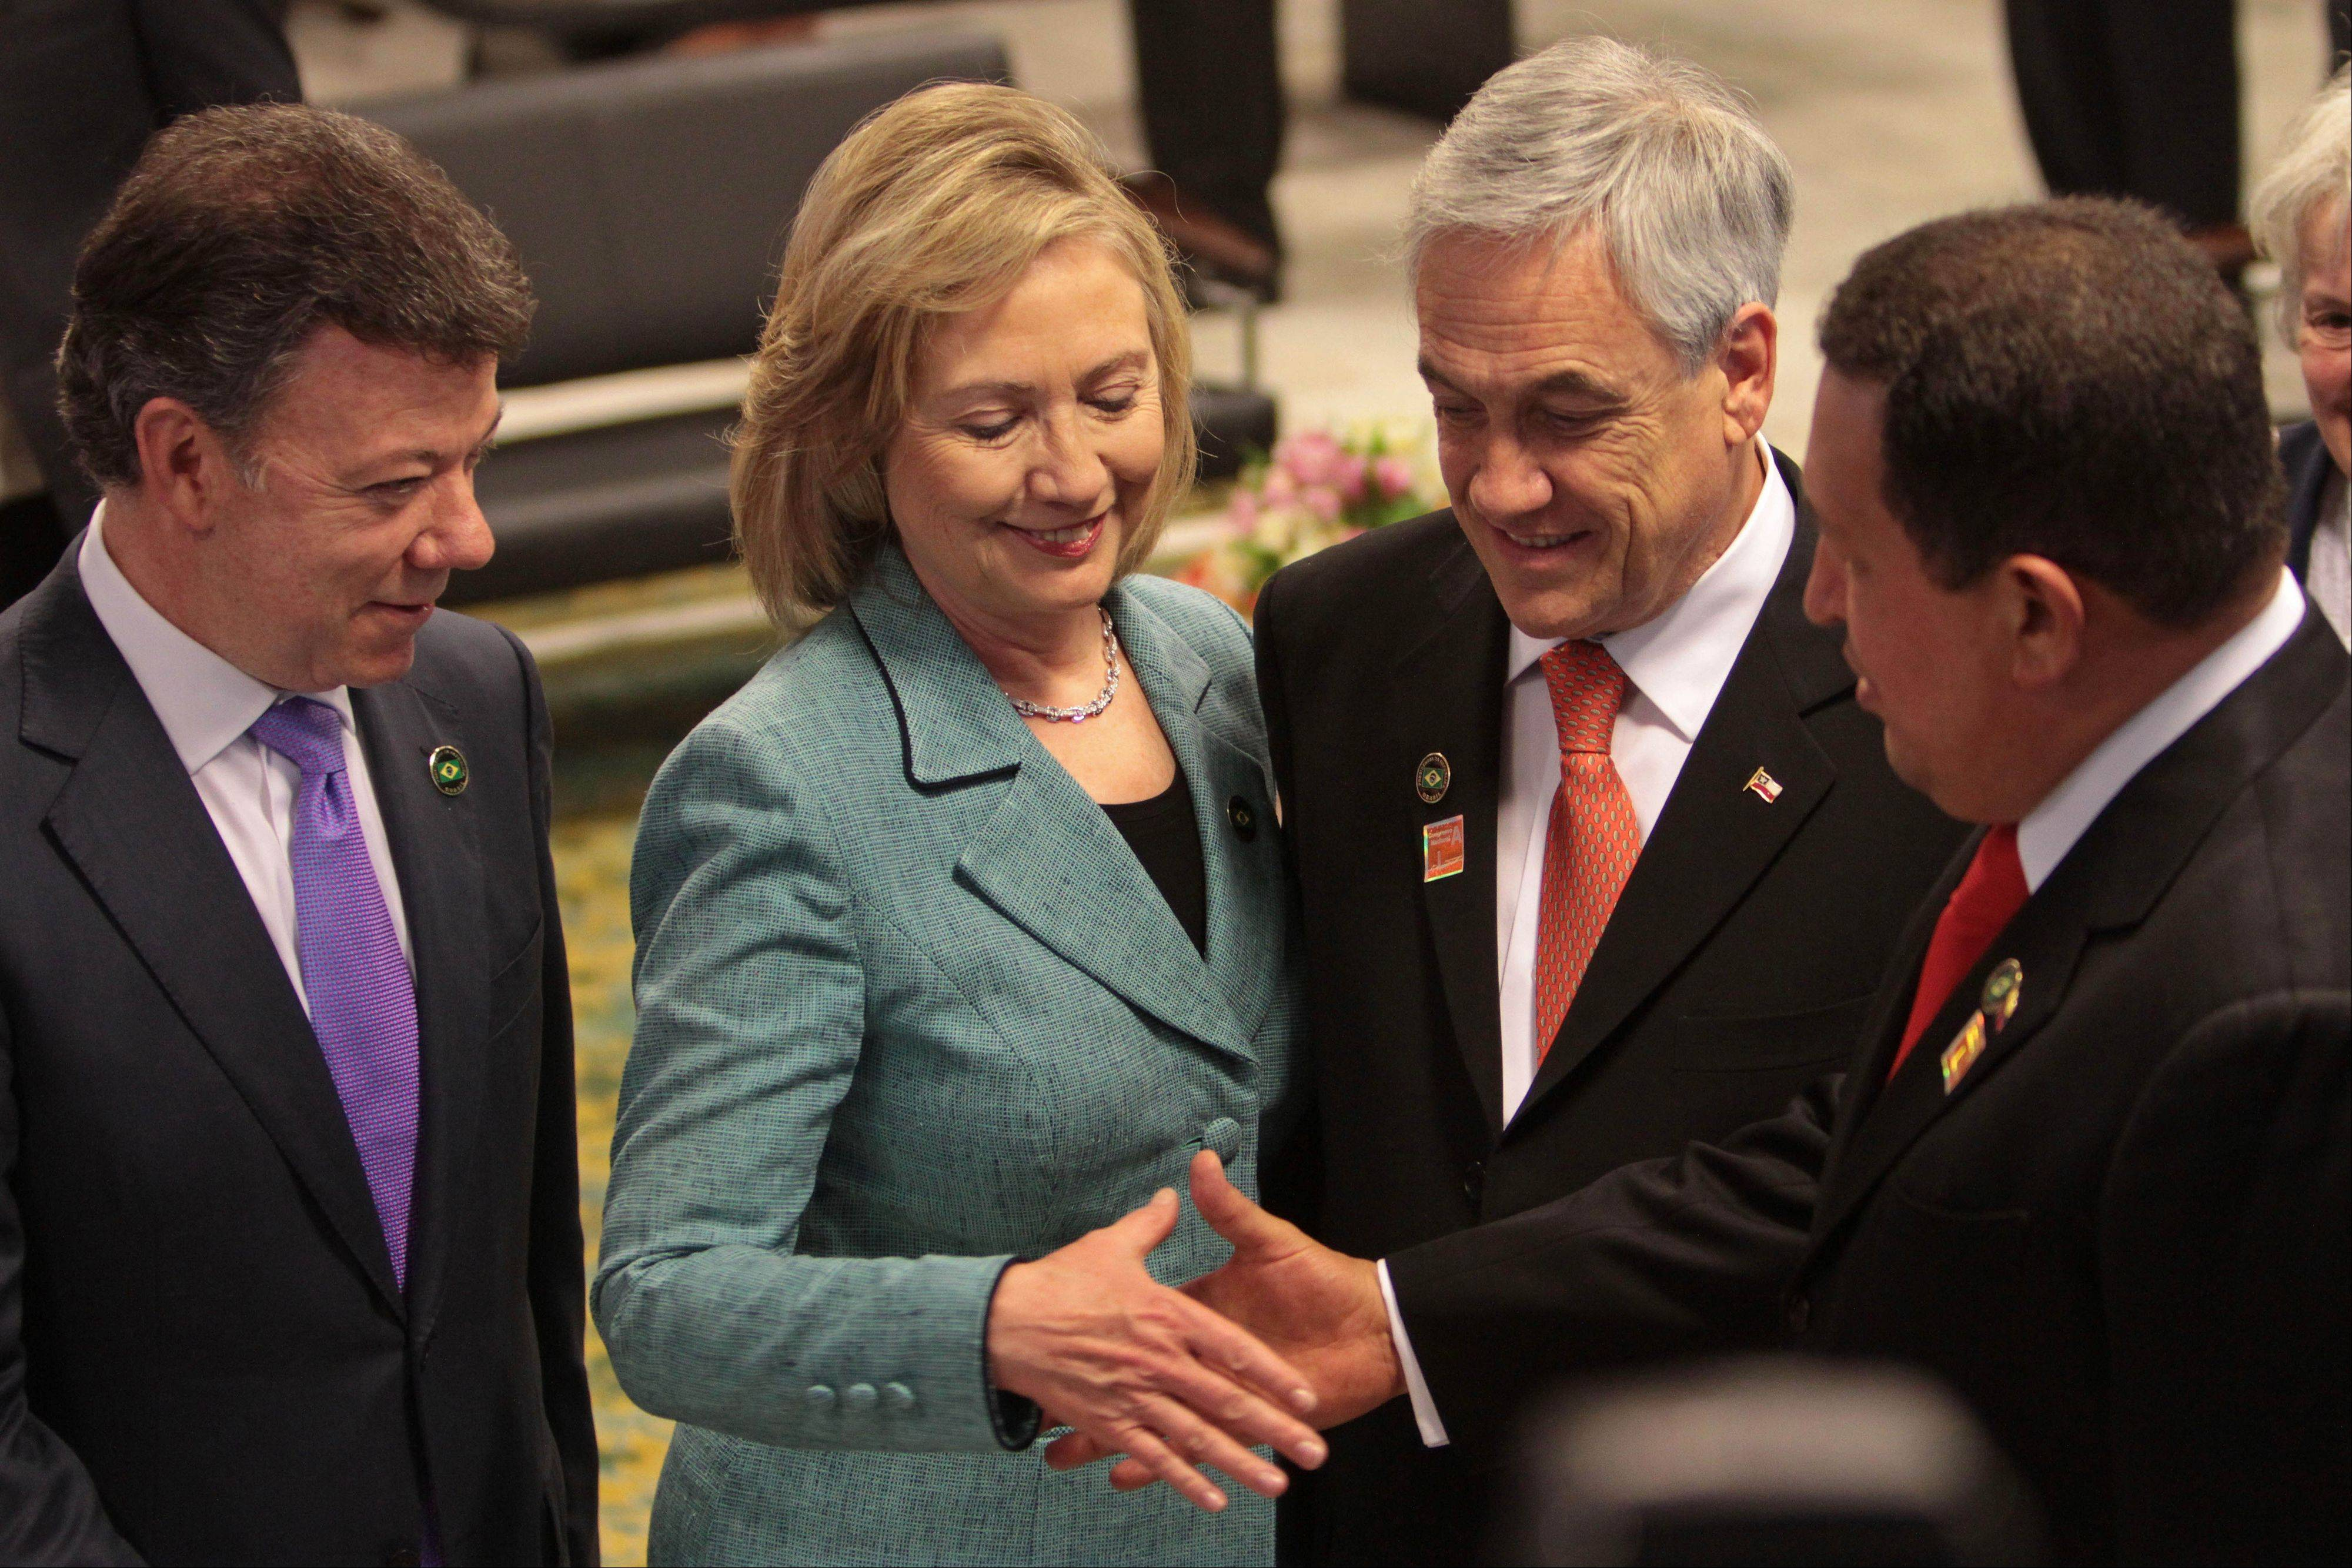 In this Jan. 1, 2011 file photo, U.S. Secretary of State Hillary Clinton, second from left, shakes hands with Venezuela's President Hugo Chavez next to Colombia's President Juan Manuel Santos, left, and Chile's President Sebastian Pinera at the inauguration ceremony of Brazil's President Dilma Rousseff in Brasilia, Brazil.